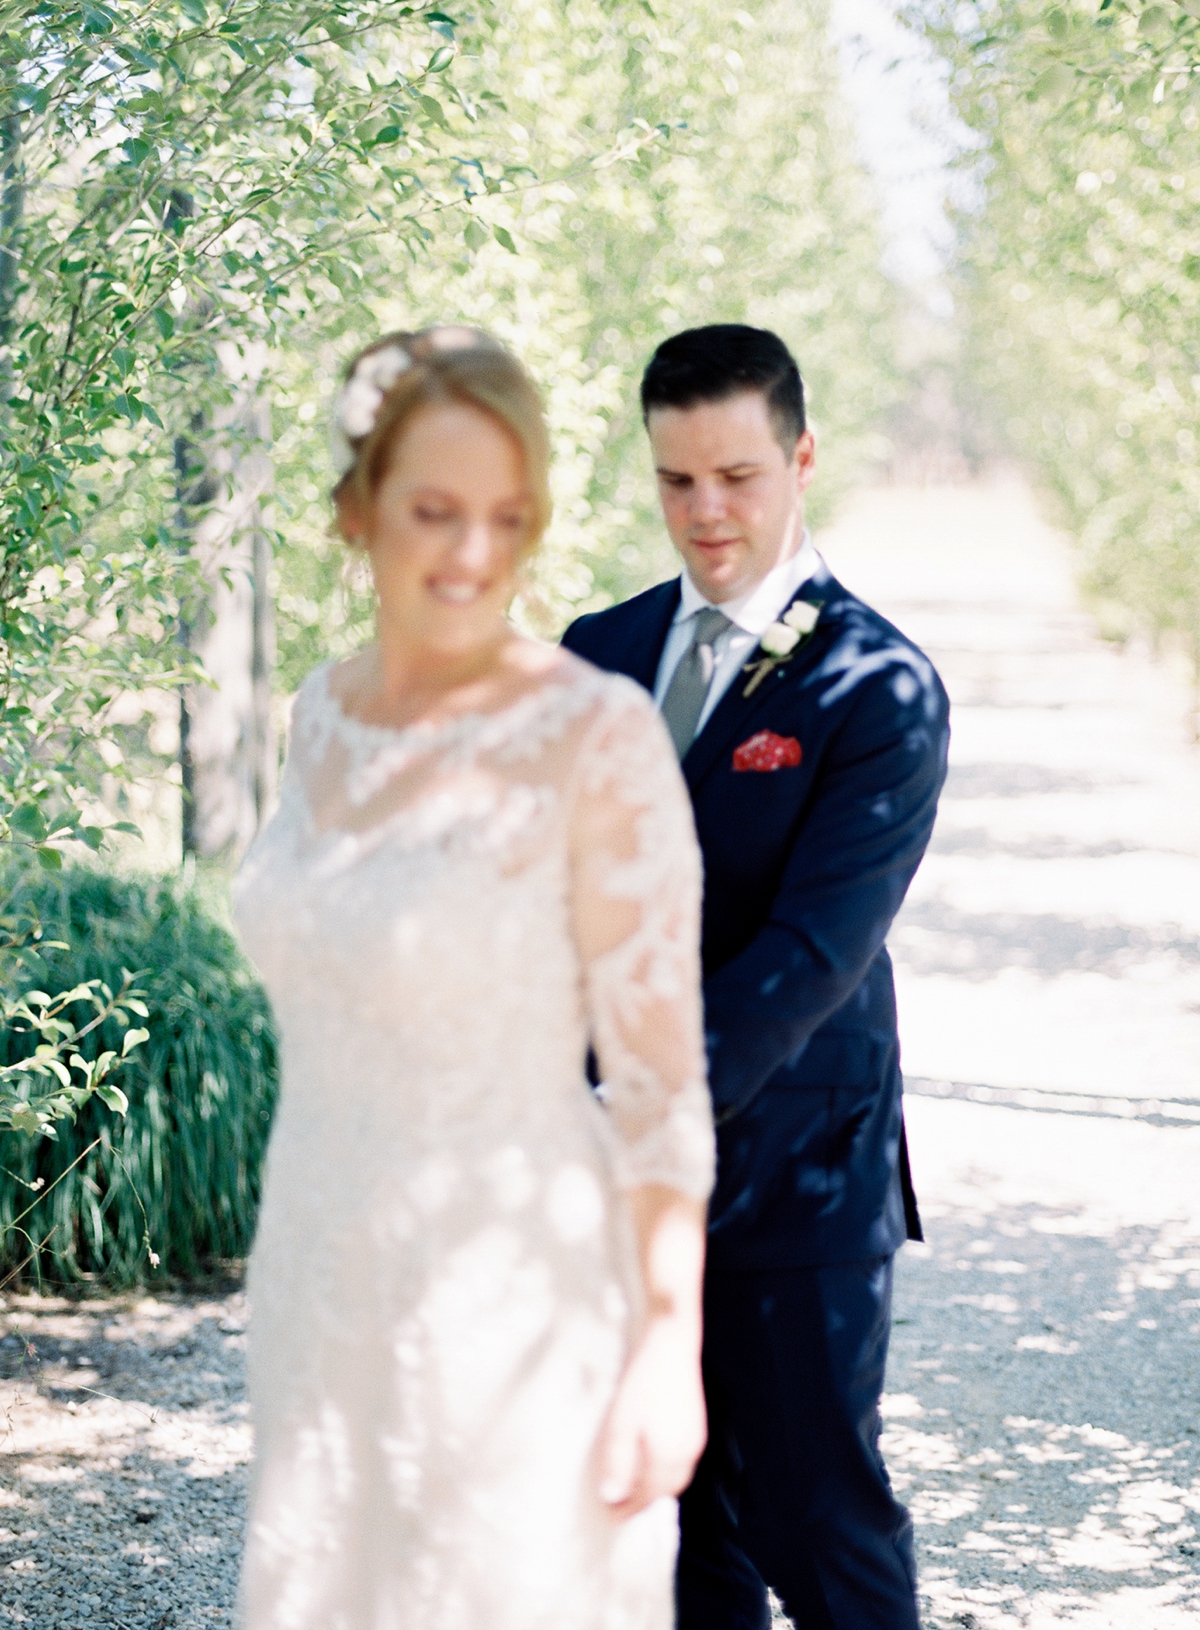 The Vine Grove Mudgee Wedding, Photography by Mr Edwards_1745.jpg